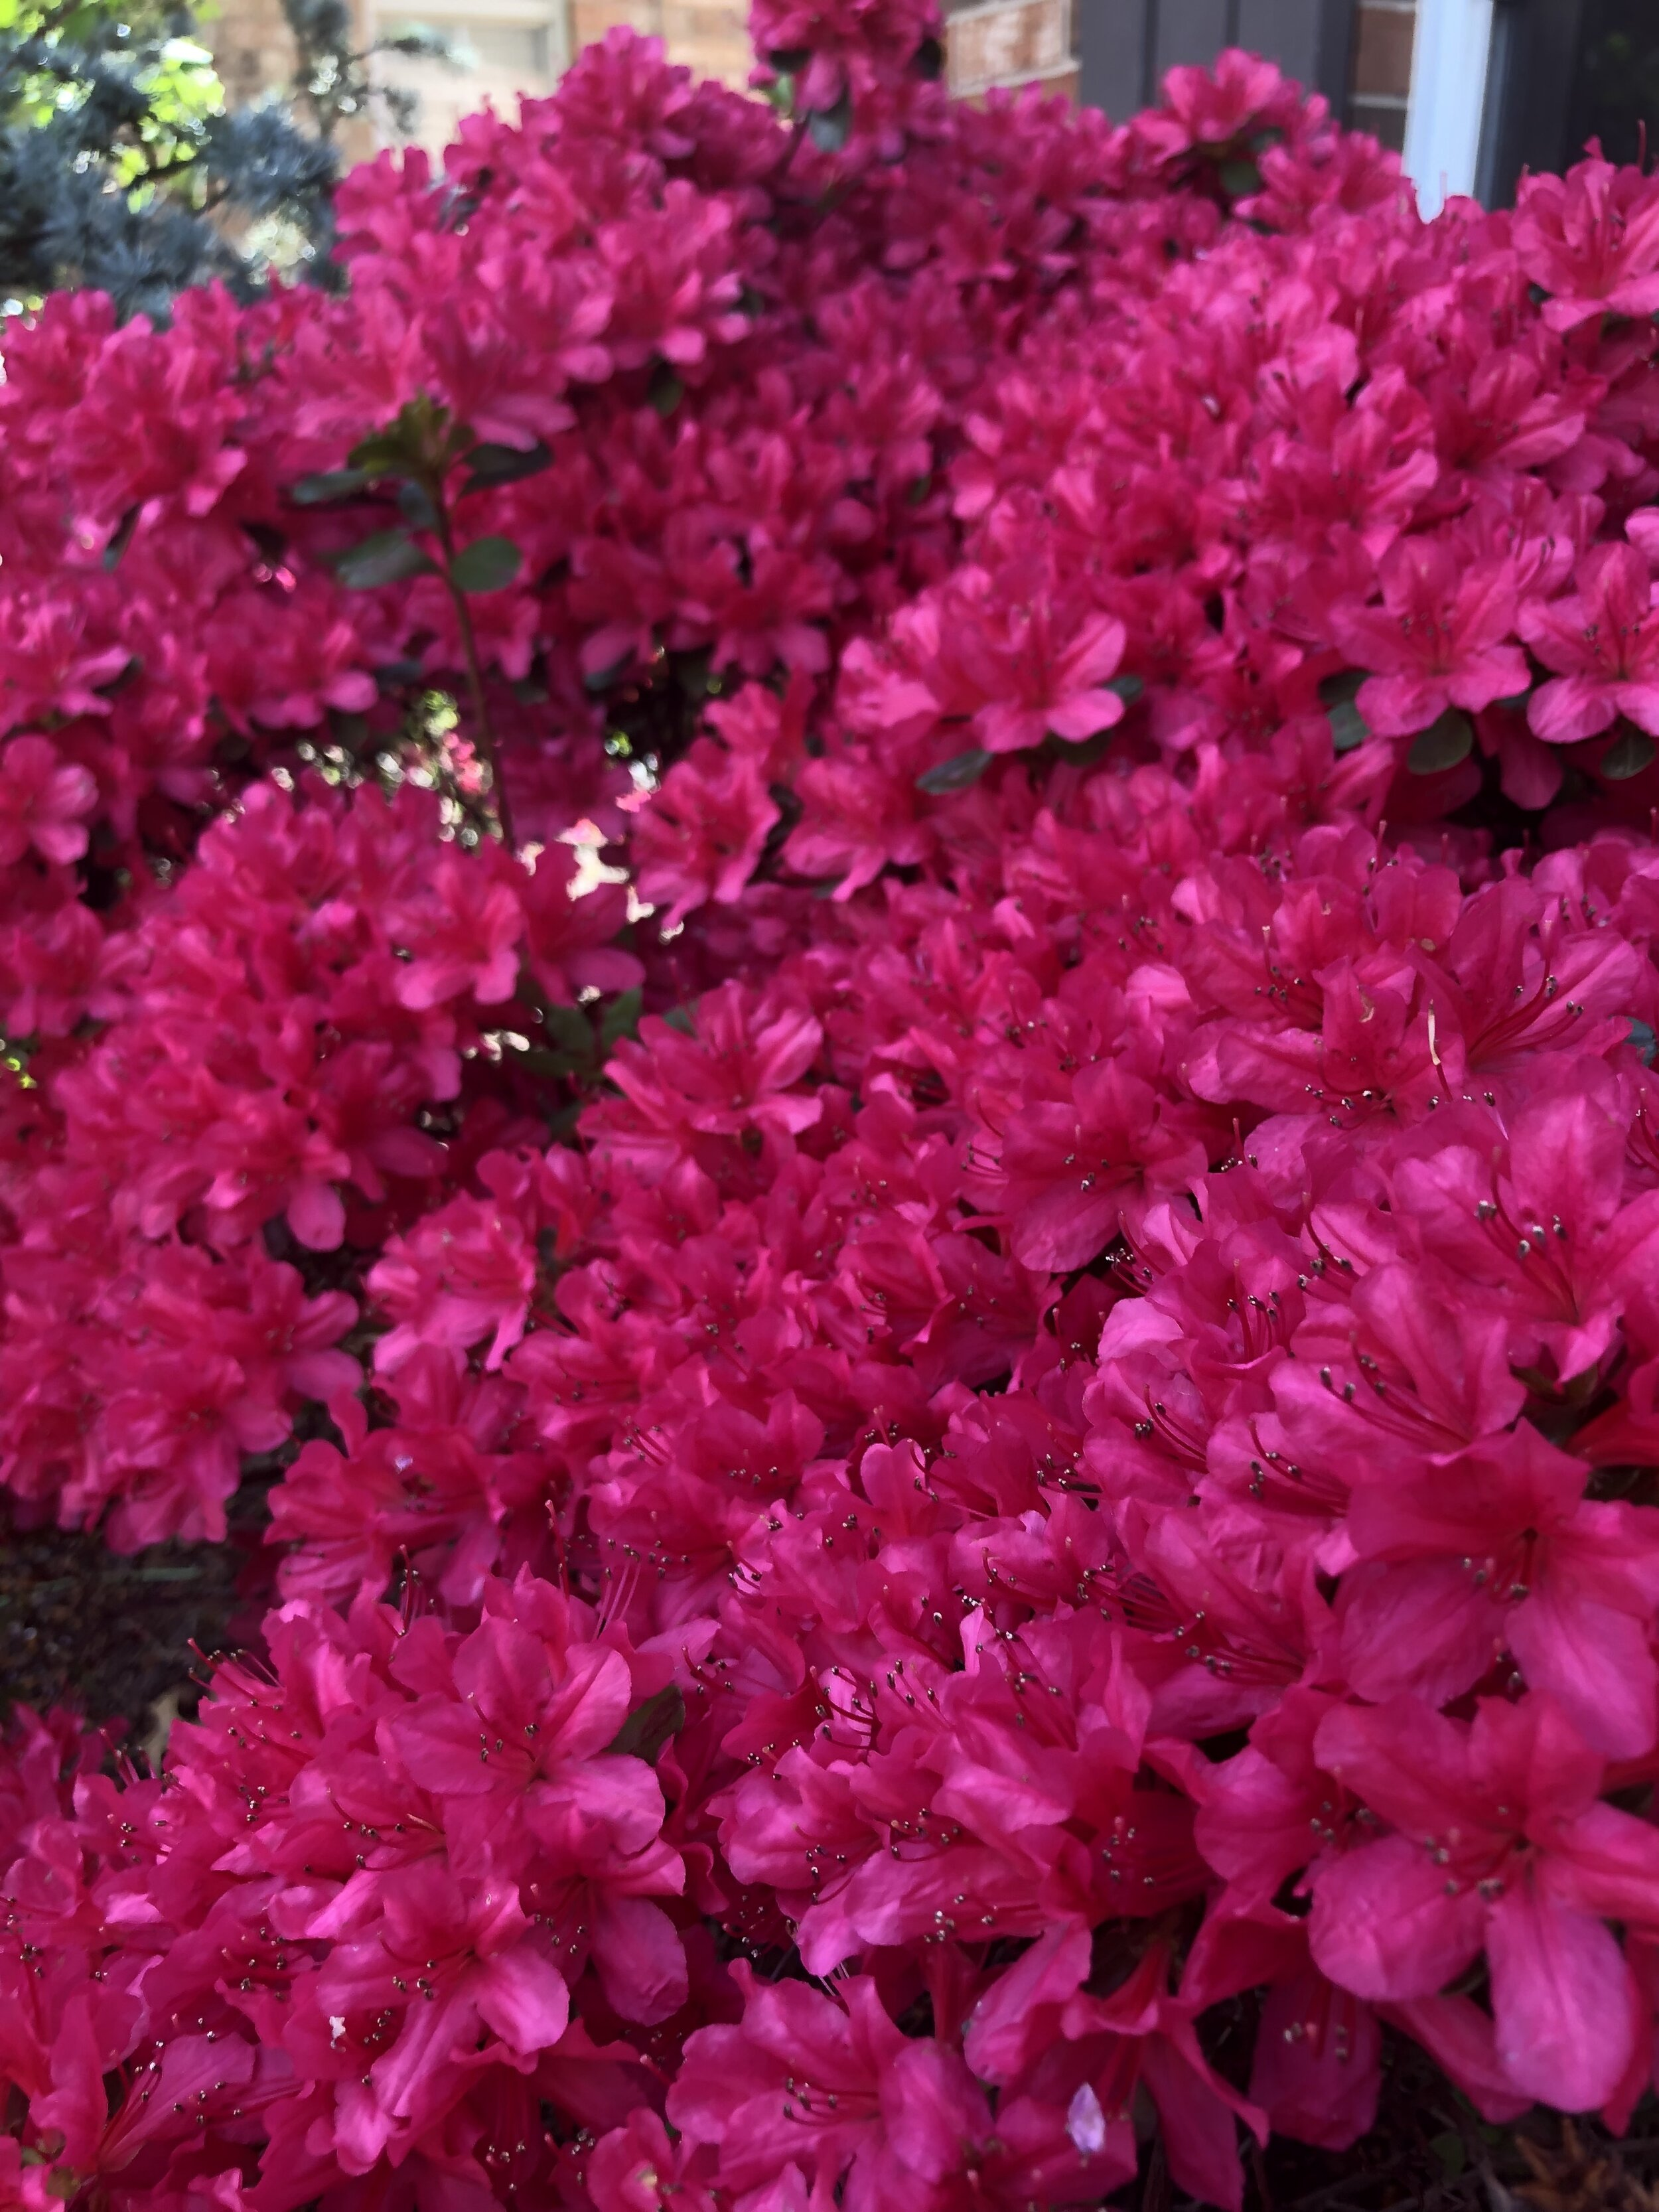 When azalea are planted in the fall the establish roots and bloom well the next spring.